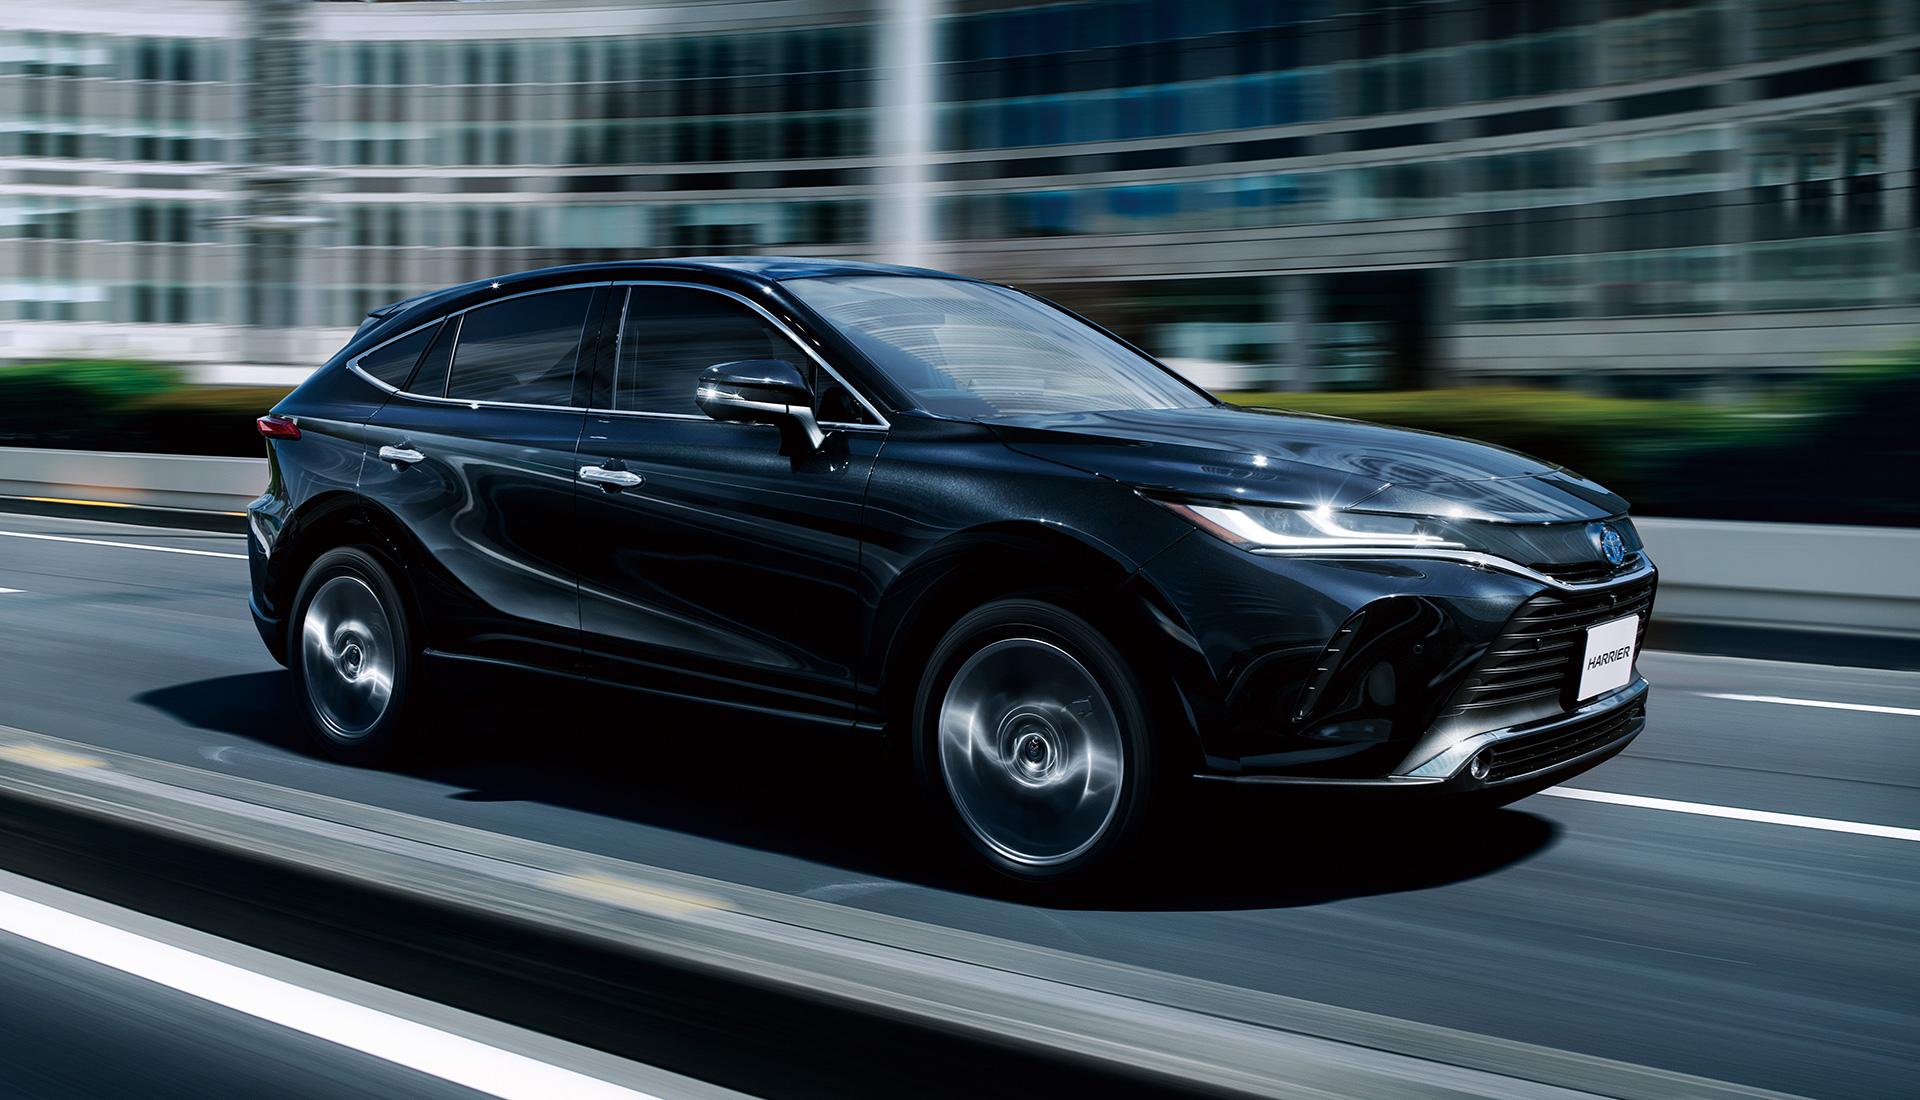 Toyota Launches New Model Harrier in Japan - Image 5